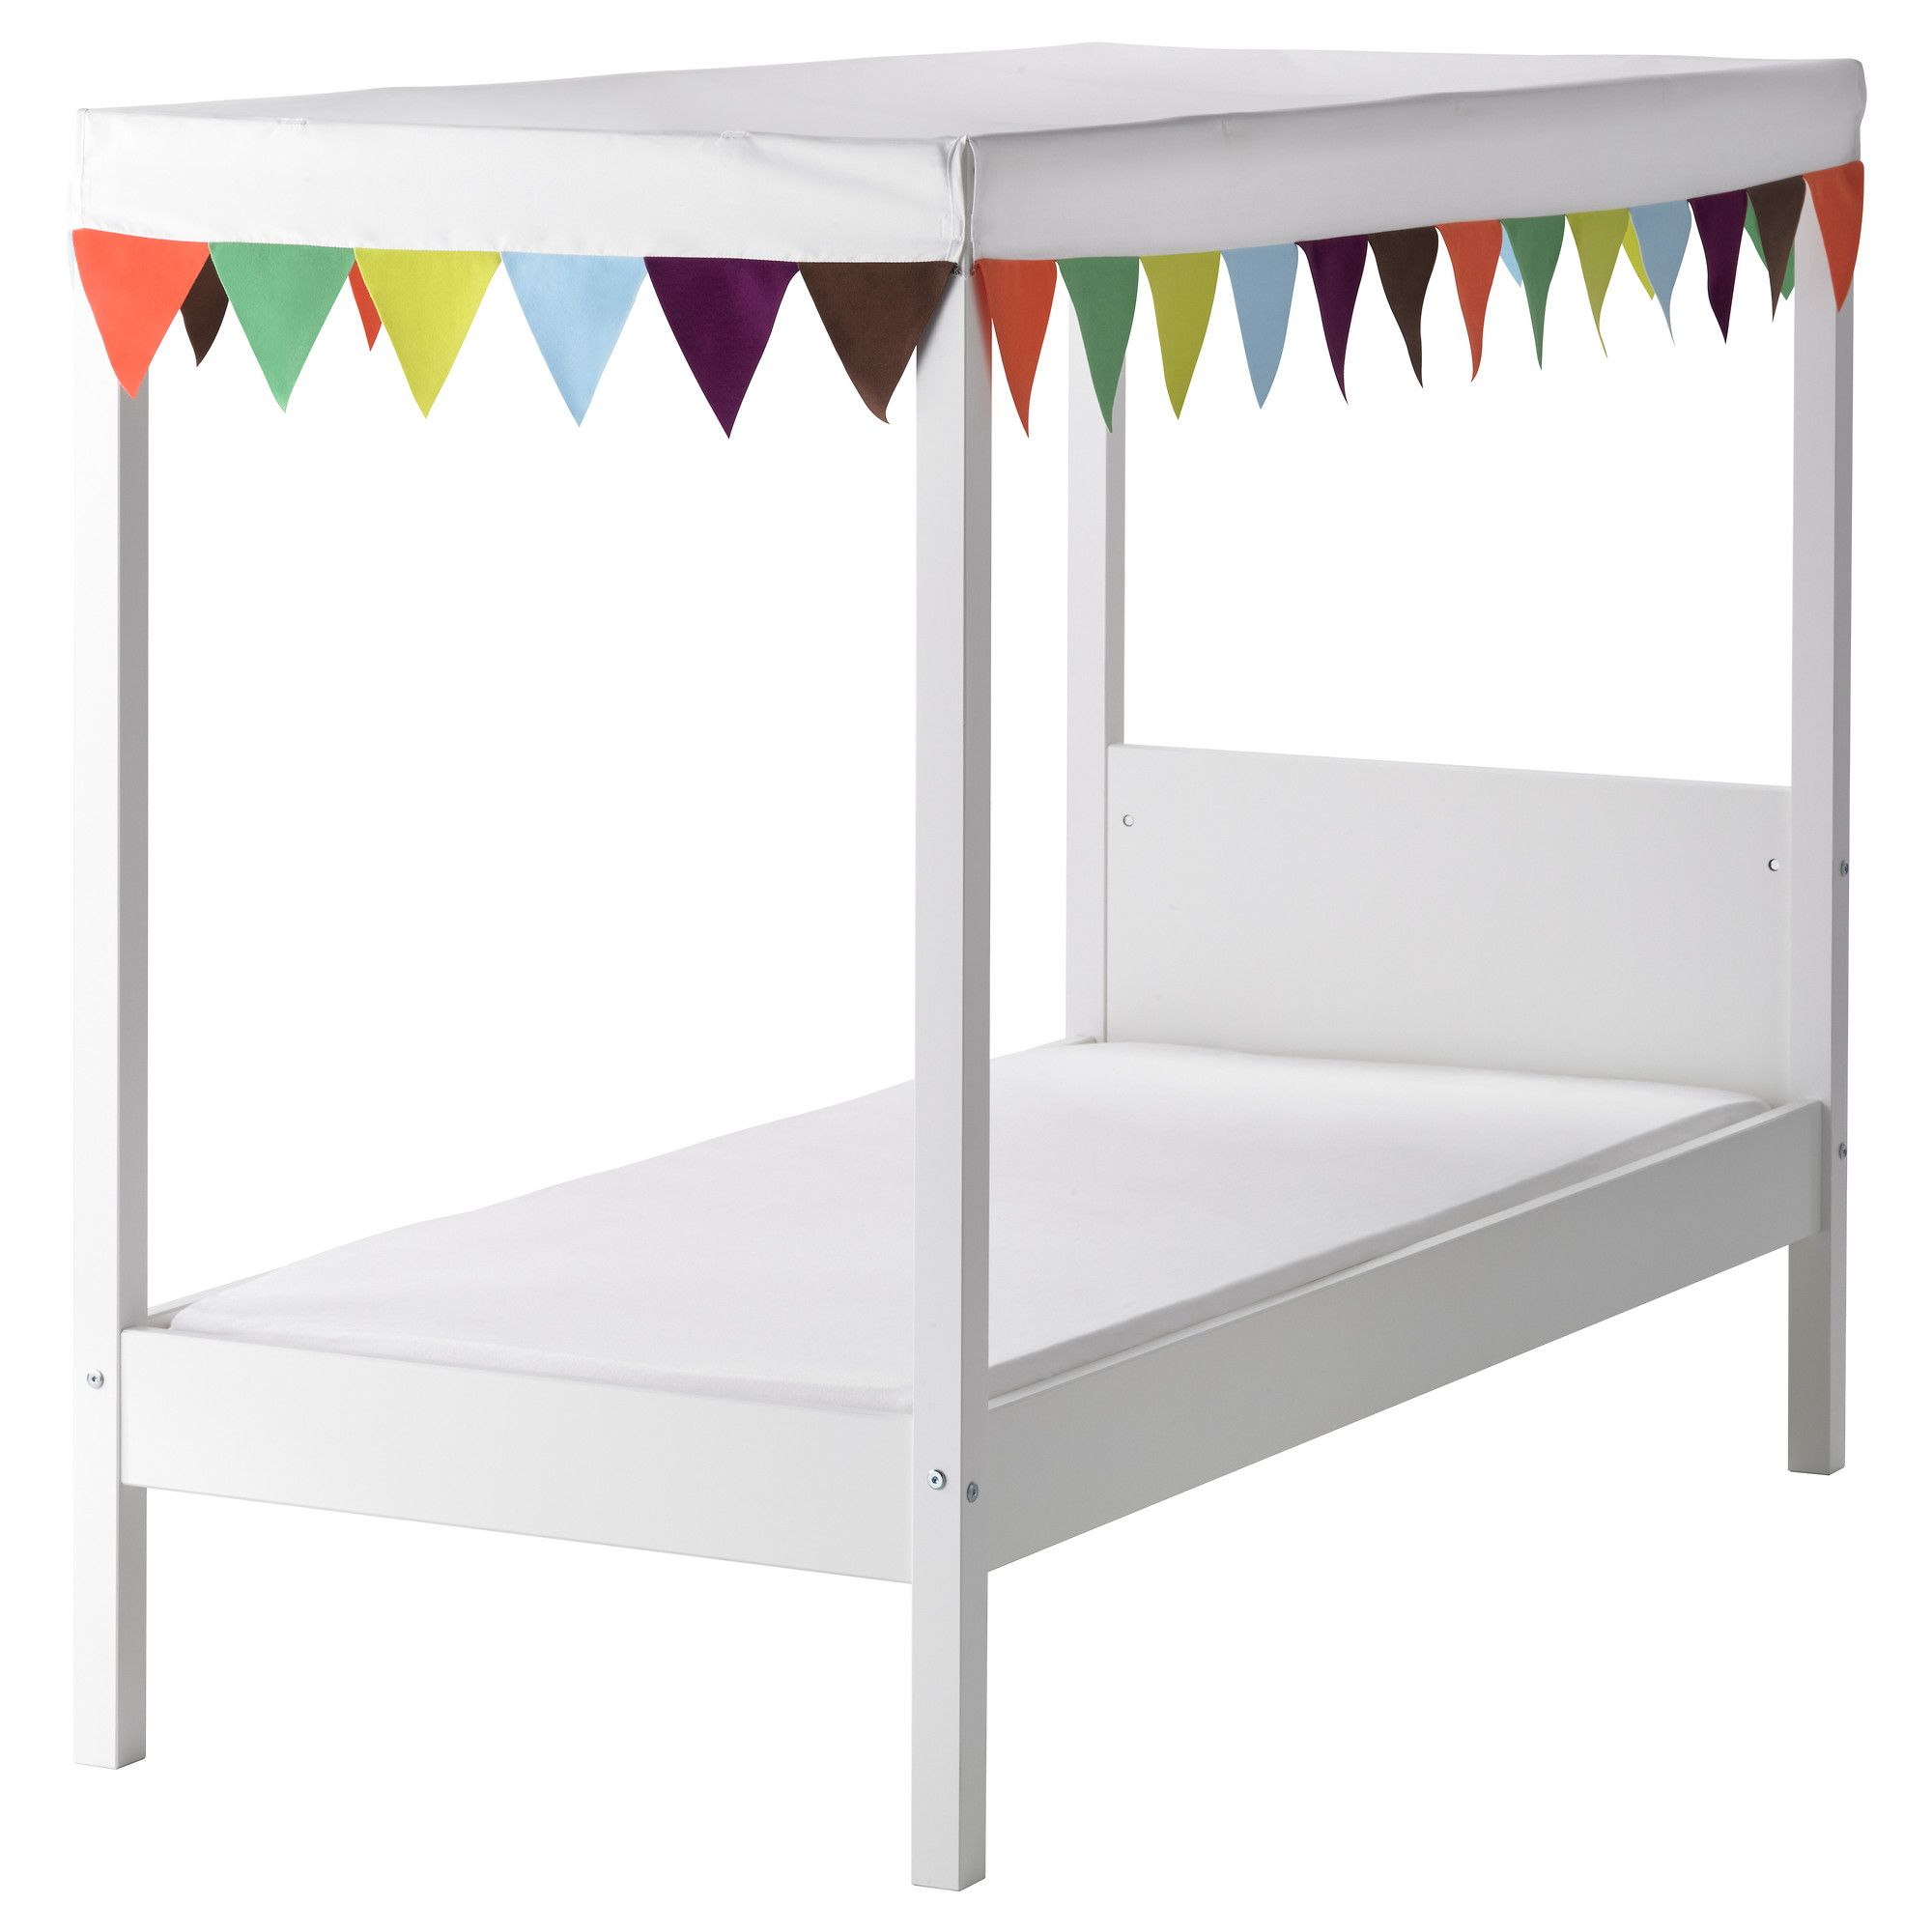 LOVE This Little Bed For A Toddler!!! How Fun! ÖVRE Bed With Slatted Base  And Canopy   IKEA